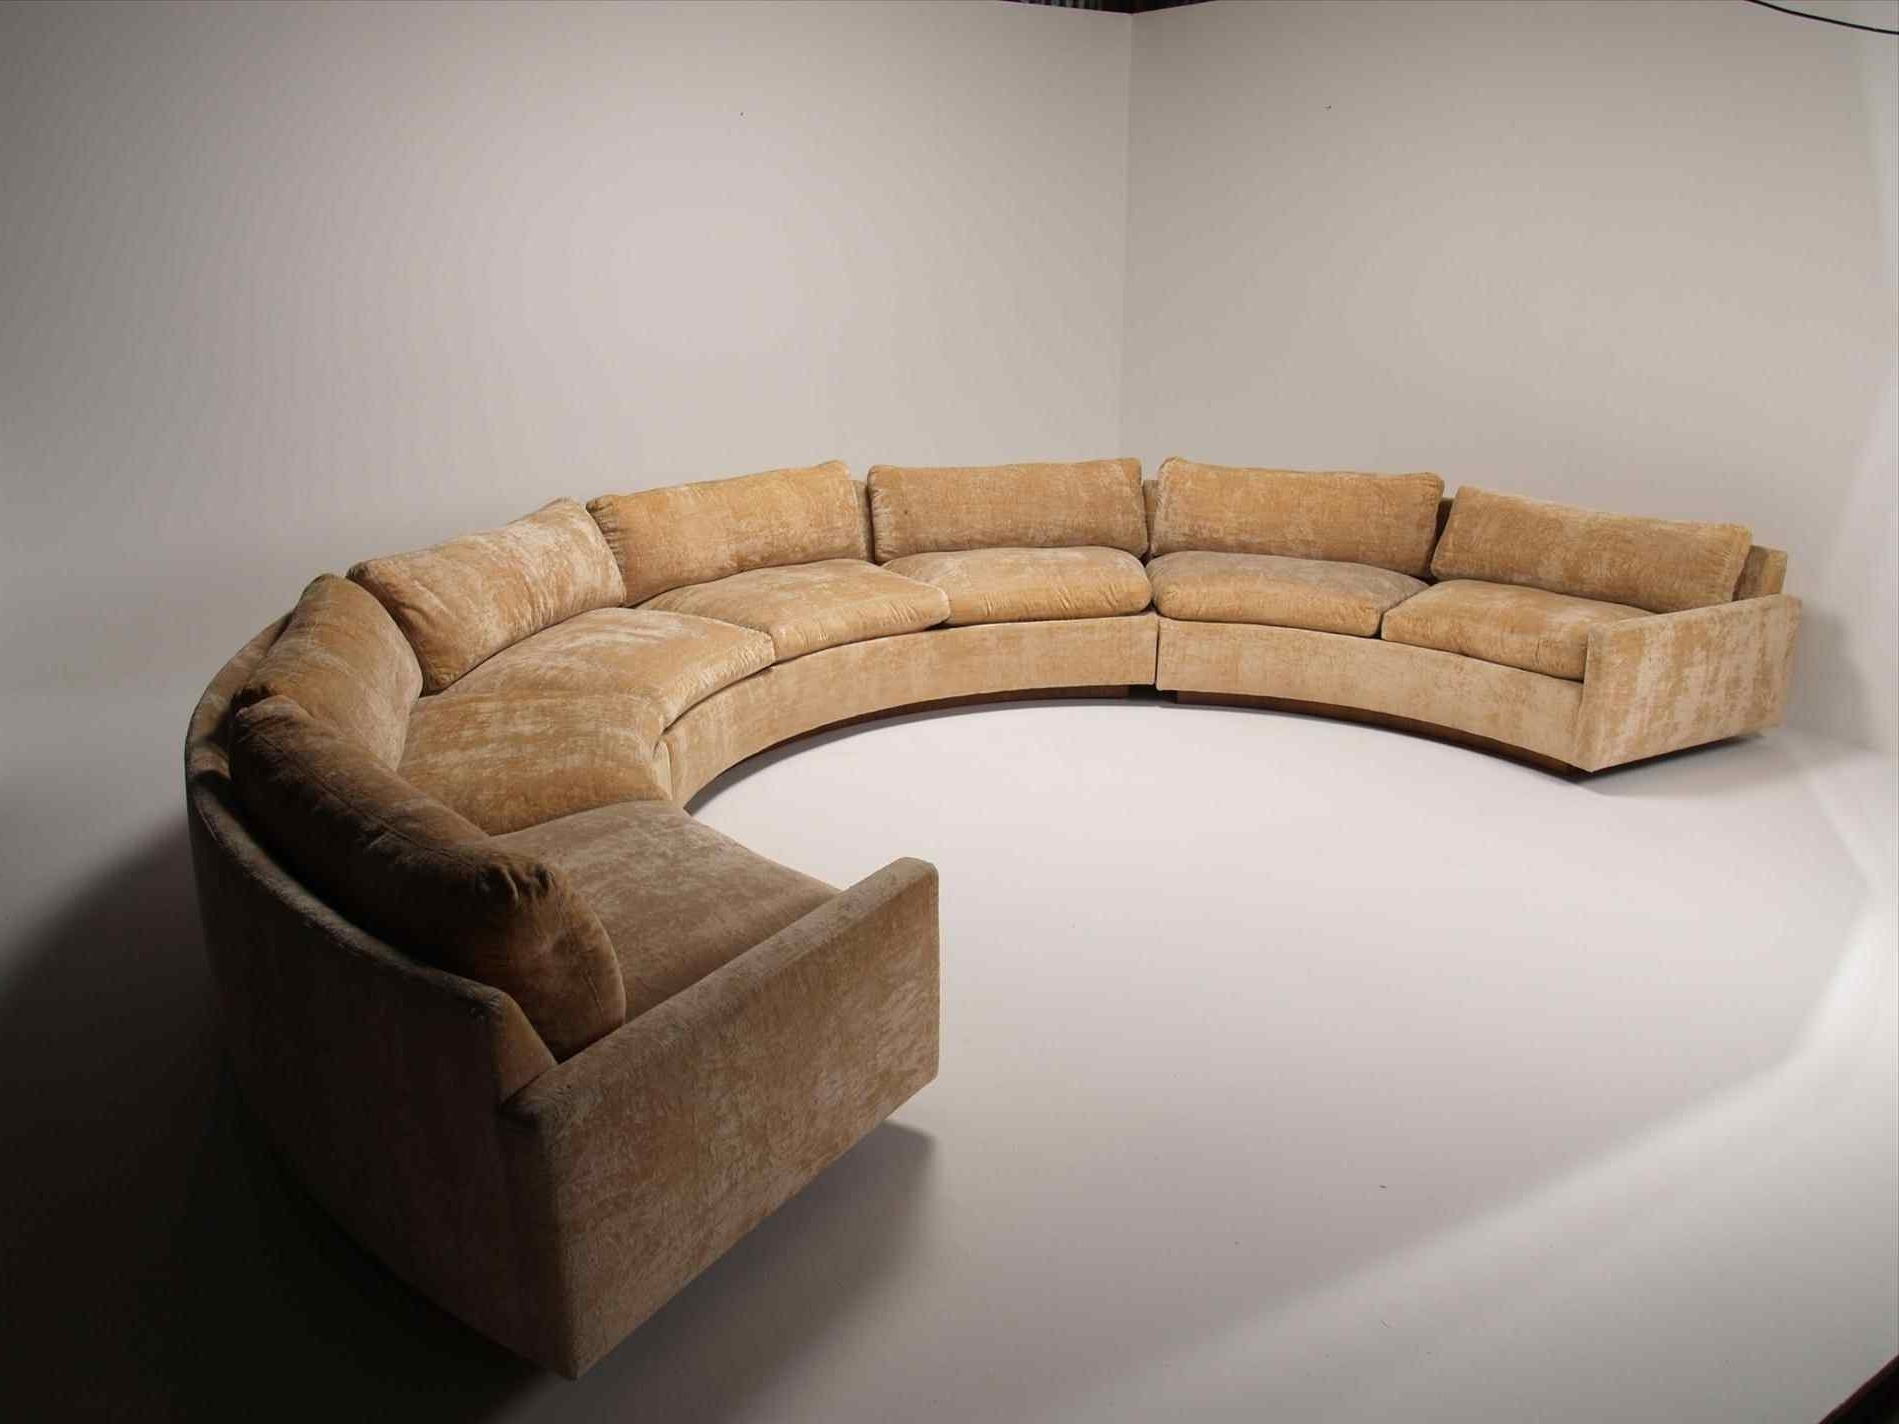 Couch : Longue Swivel And Snuggle Dfs Chairs Curved Loveseat Regarding Fashionable Circular Sofa Chairs (View 16 of 20)